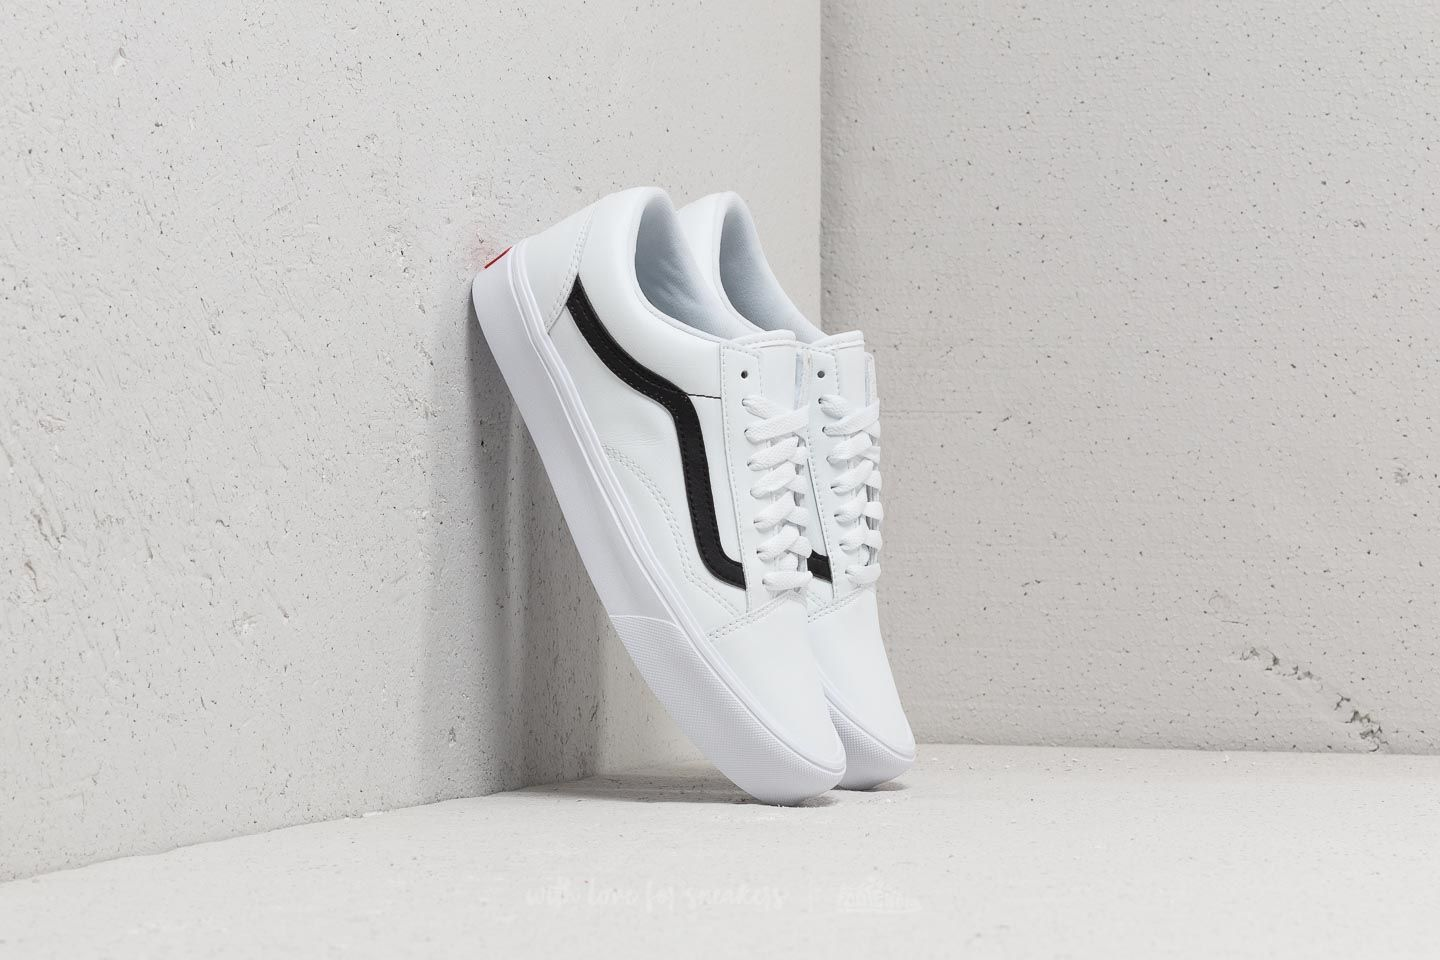 vans old skool lite classic tumble true white black. Black Bedroom Furniture Sets. Home Design Ideas